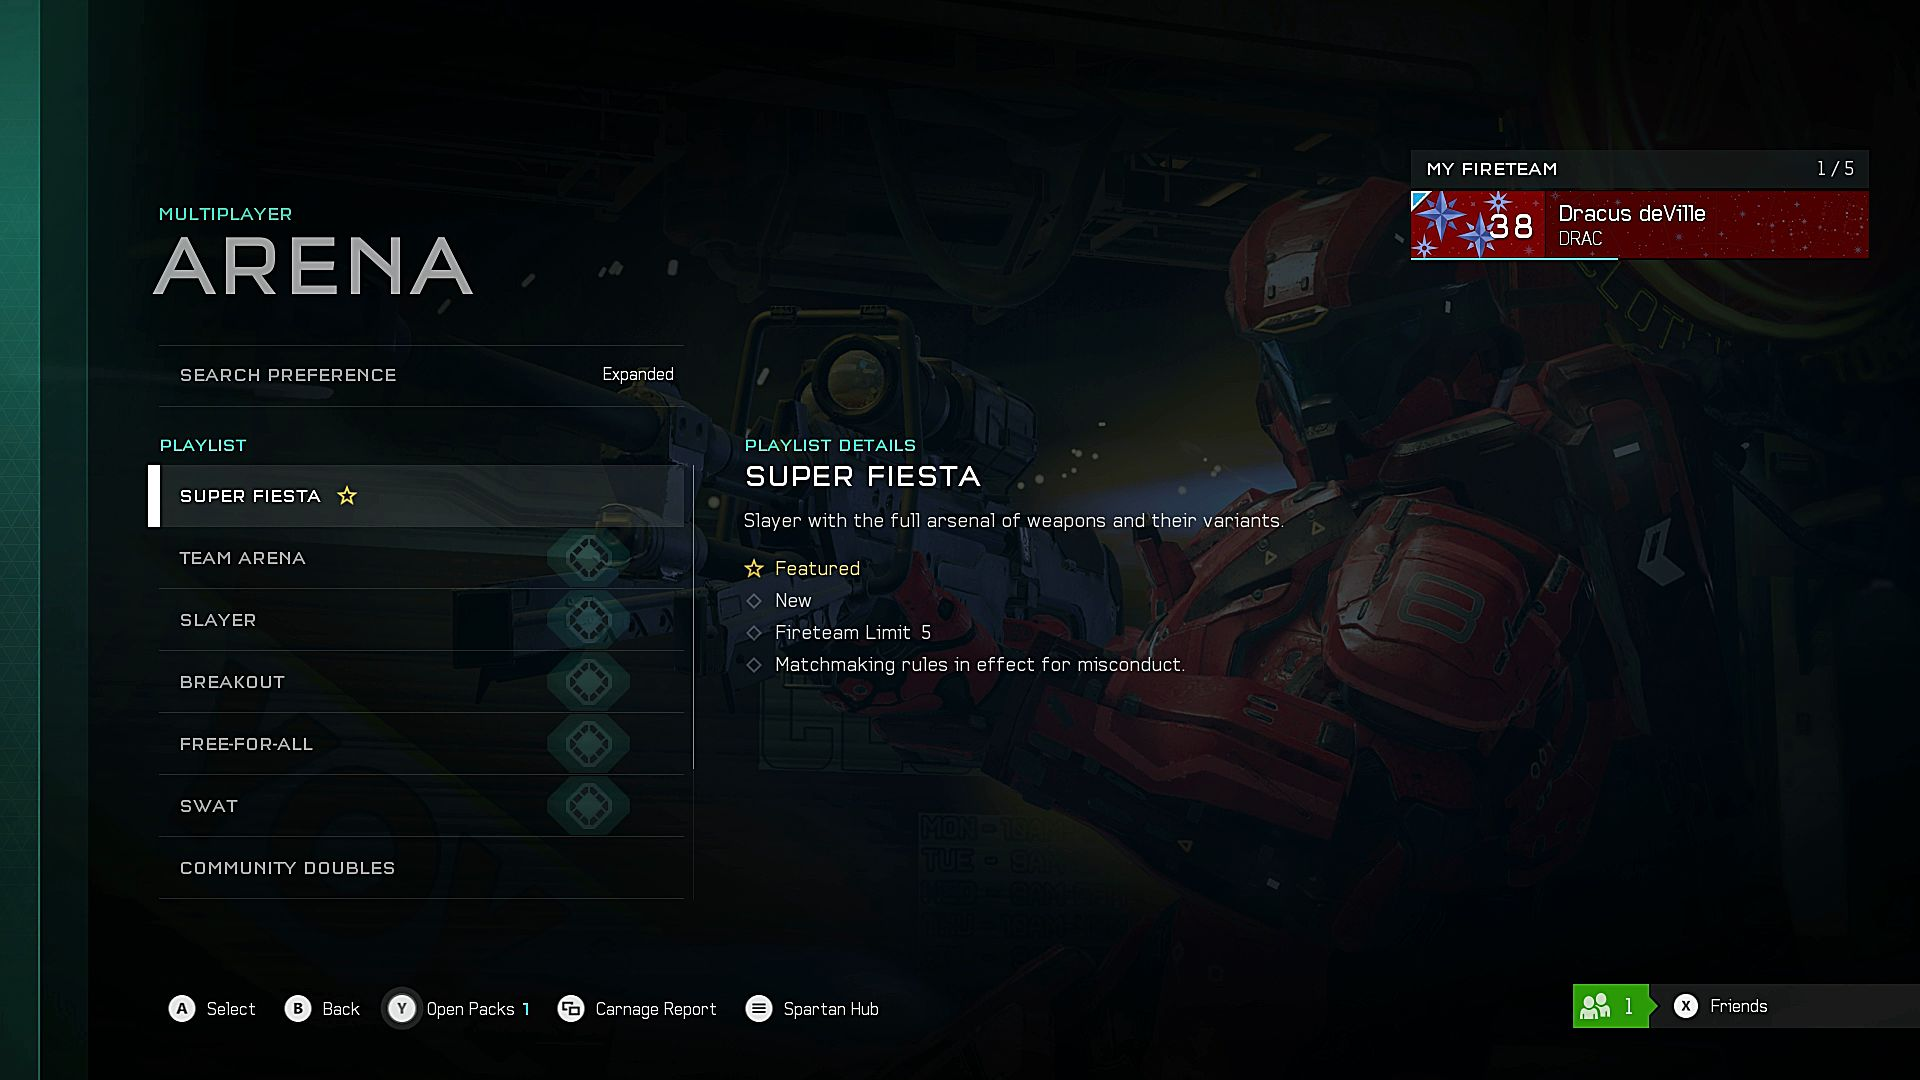 Halo 5 - A Year on Multiplayer Review | Halo 5: Guardians